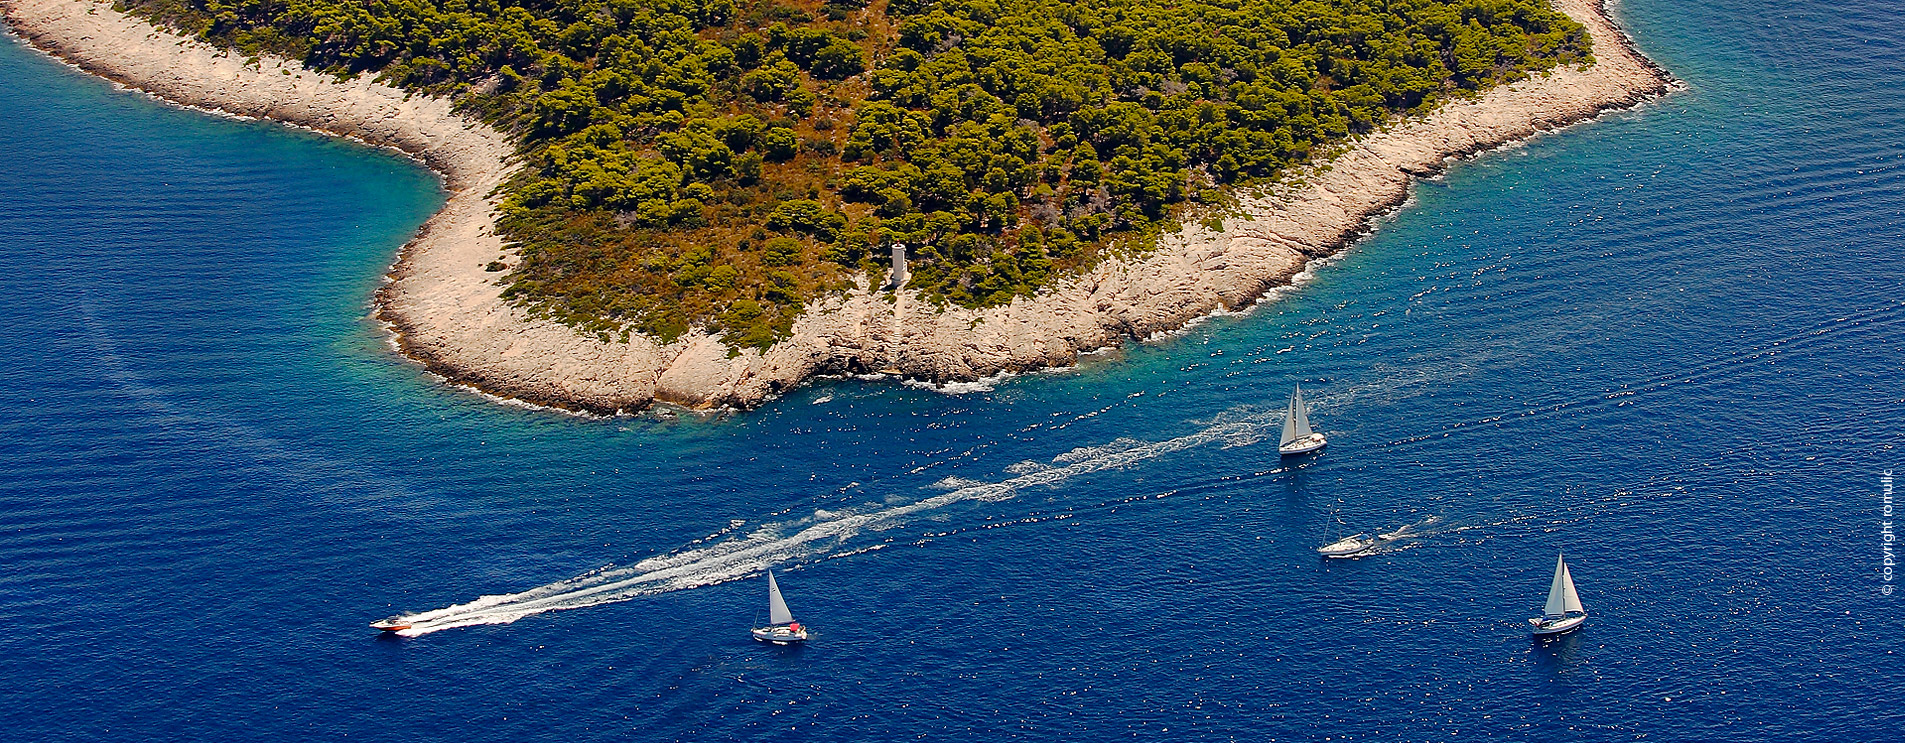 The Cape Pelegrin, the westernmost point of the island of Hvar